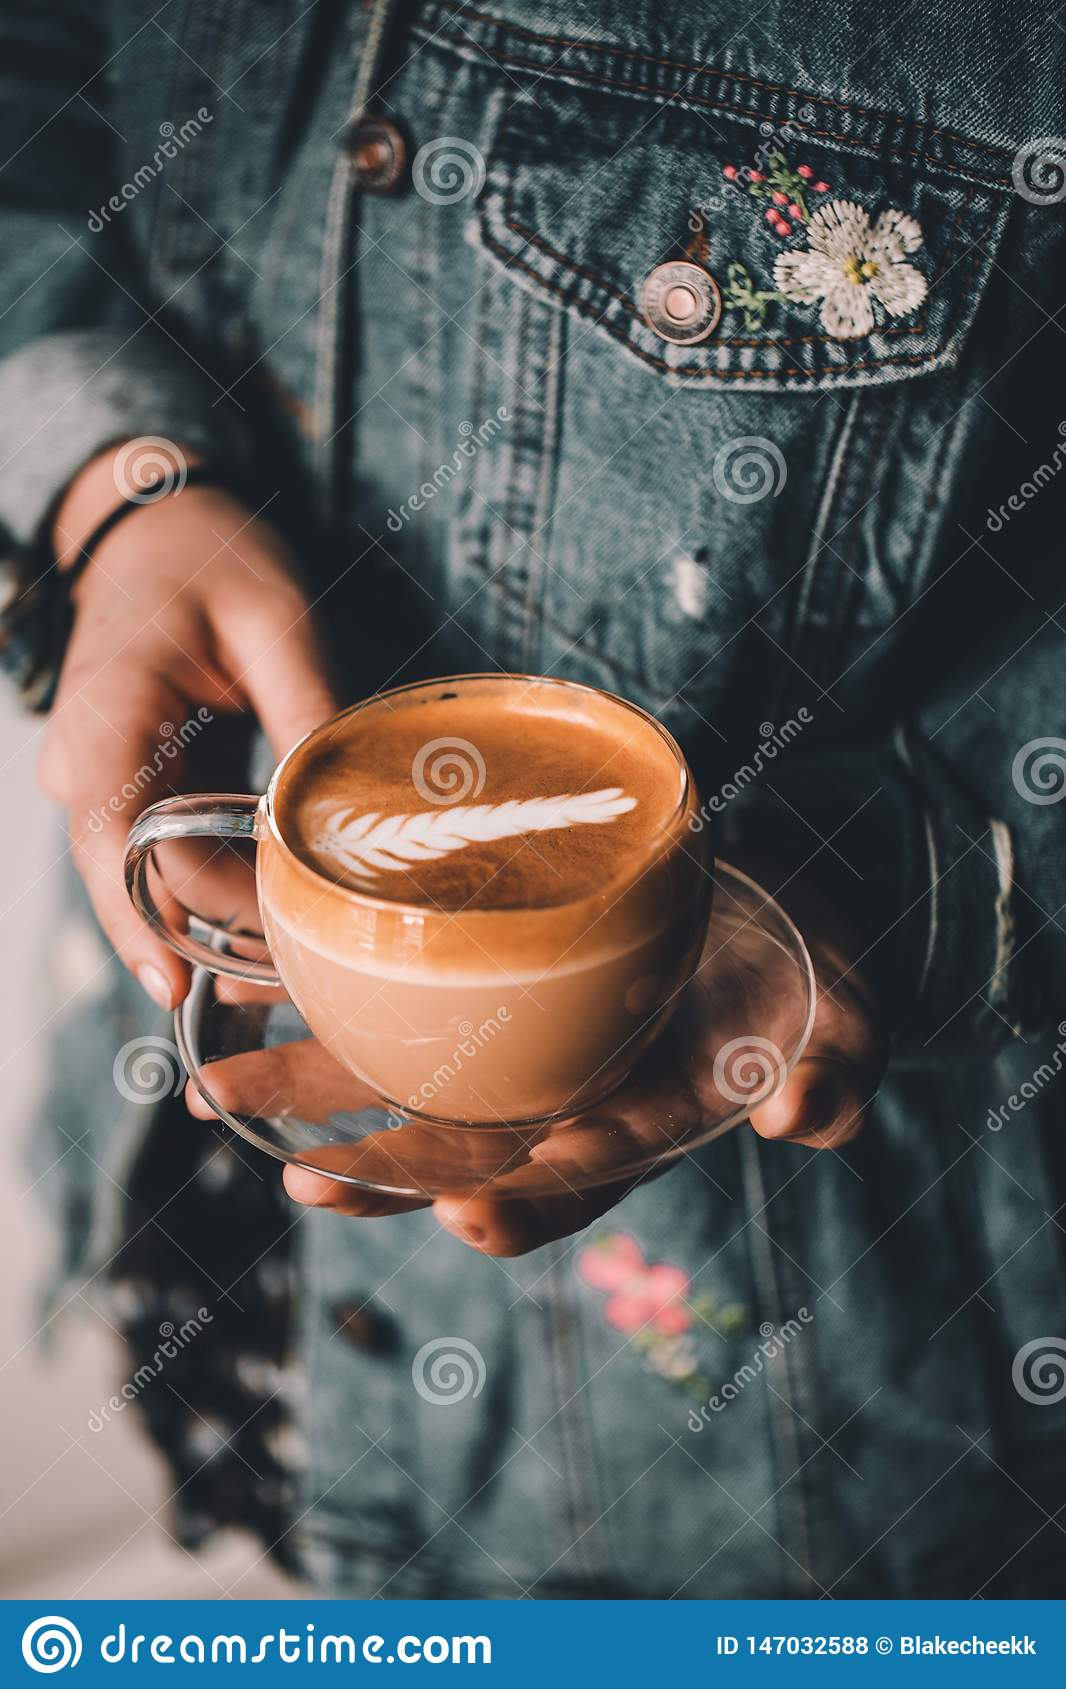 The barista and the latte